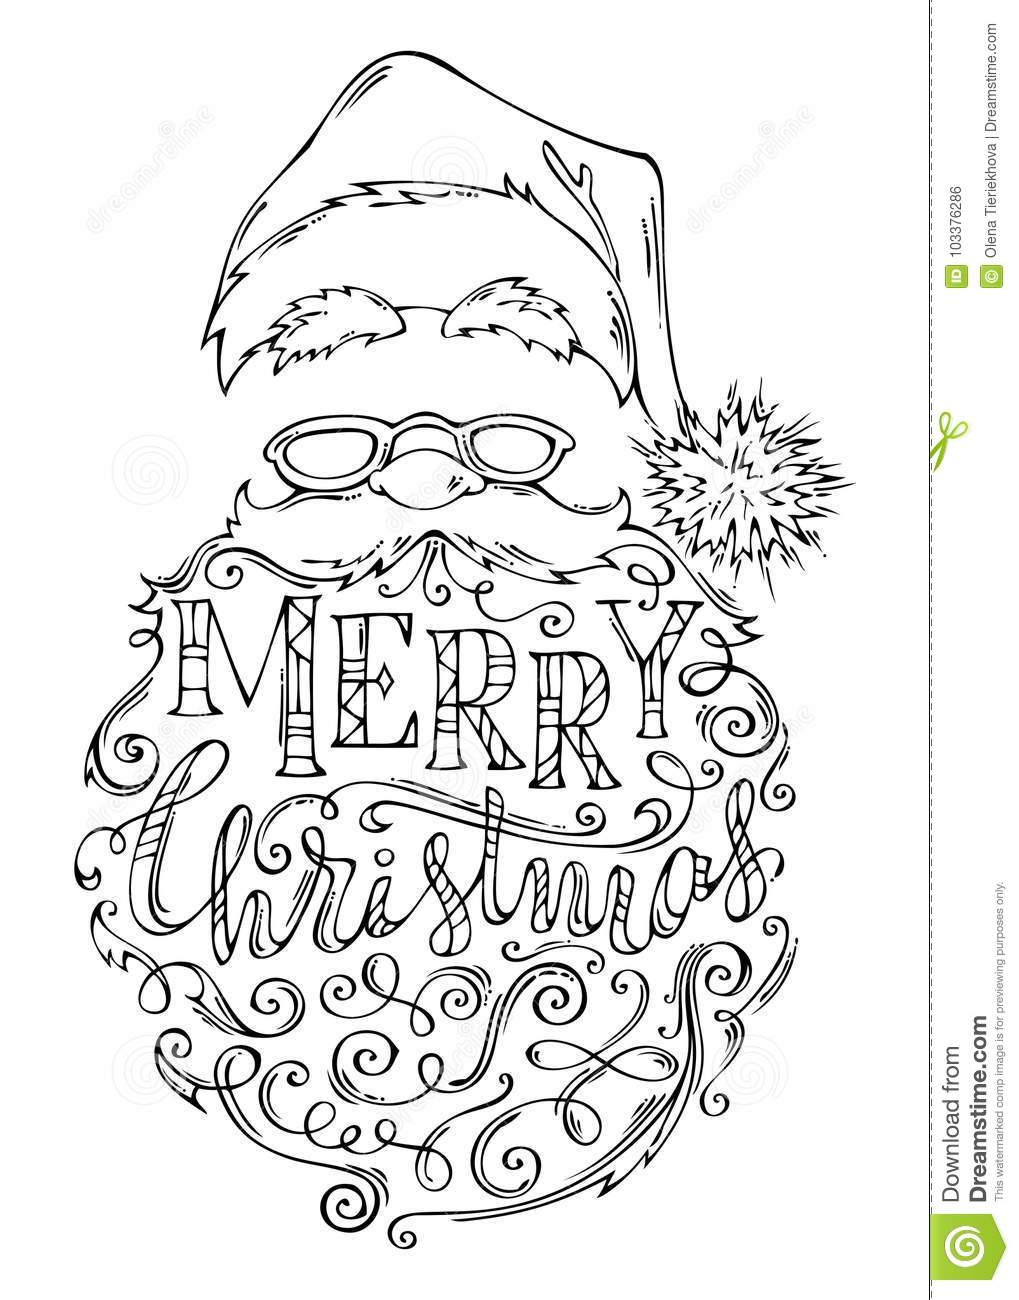 Santa Beard Coloring With Doodles Merry Christmas Lettering Stock Vector Illustration Of